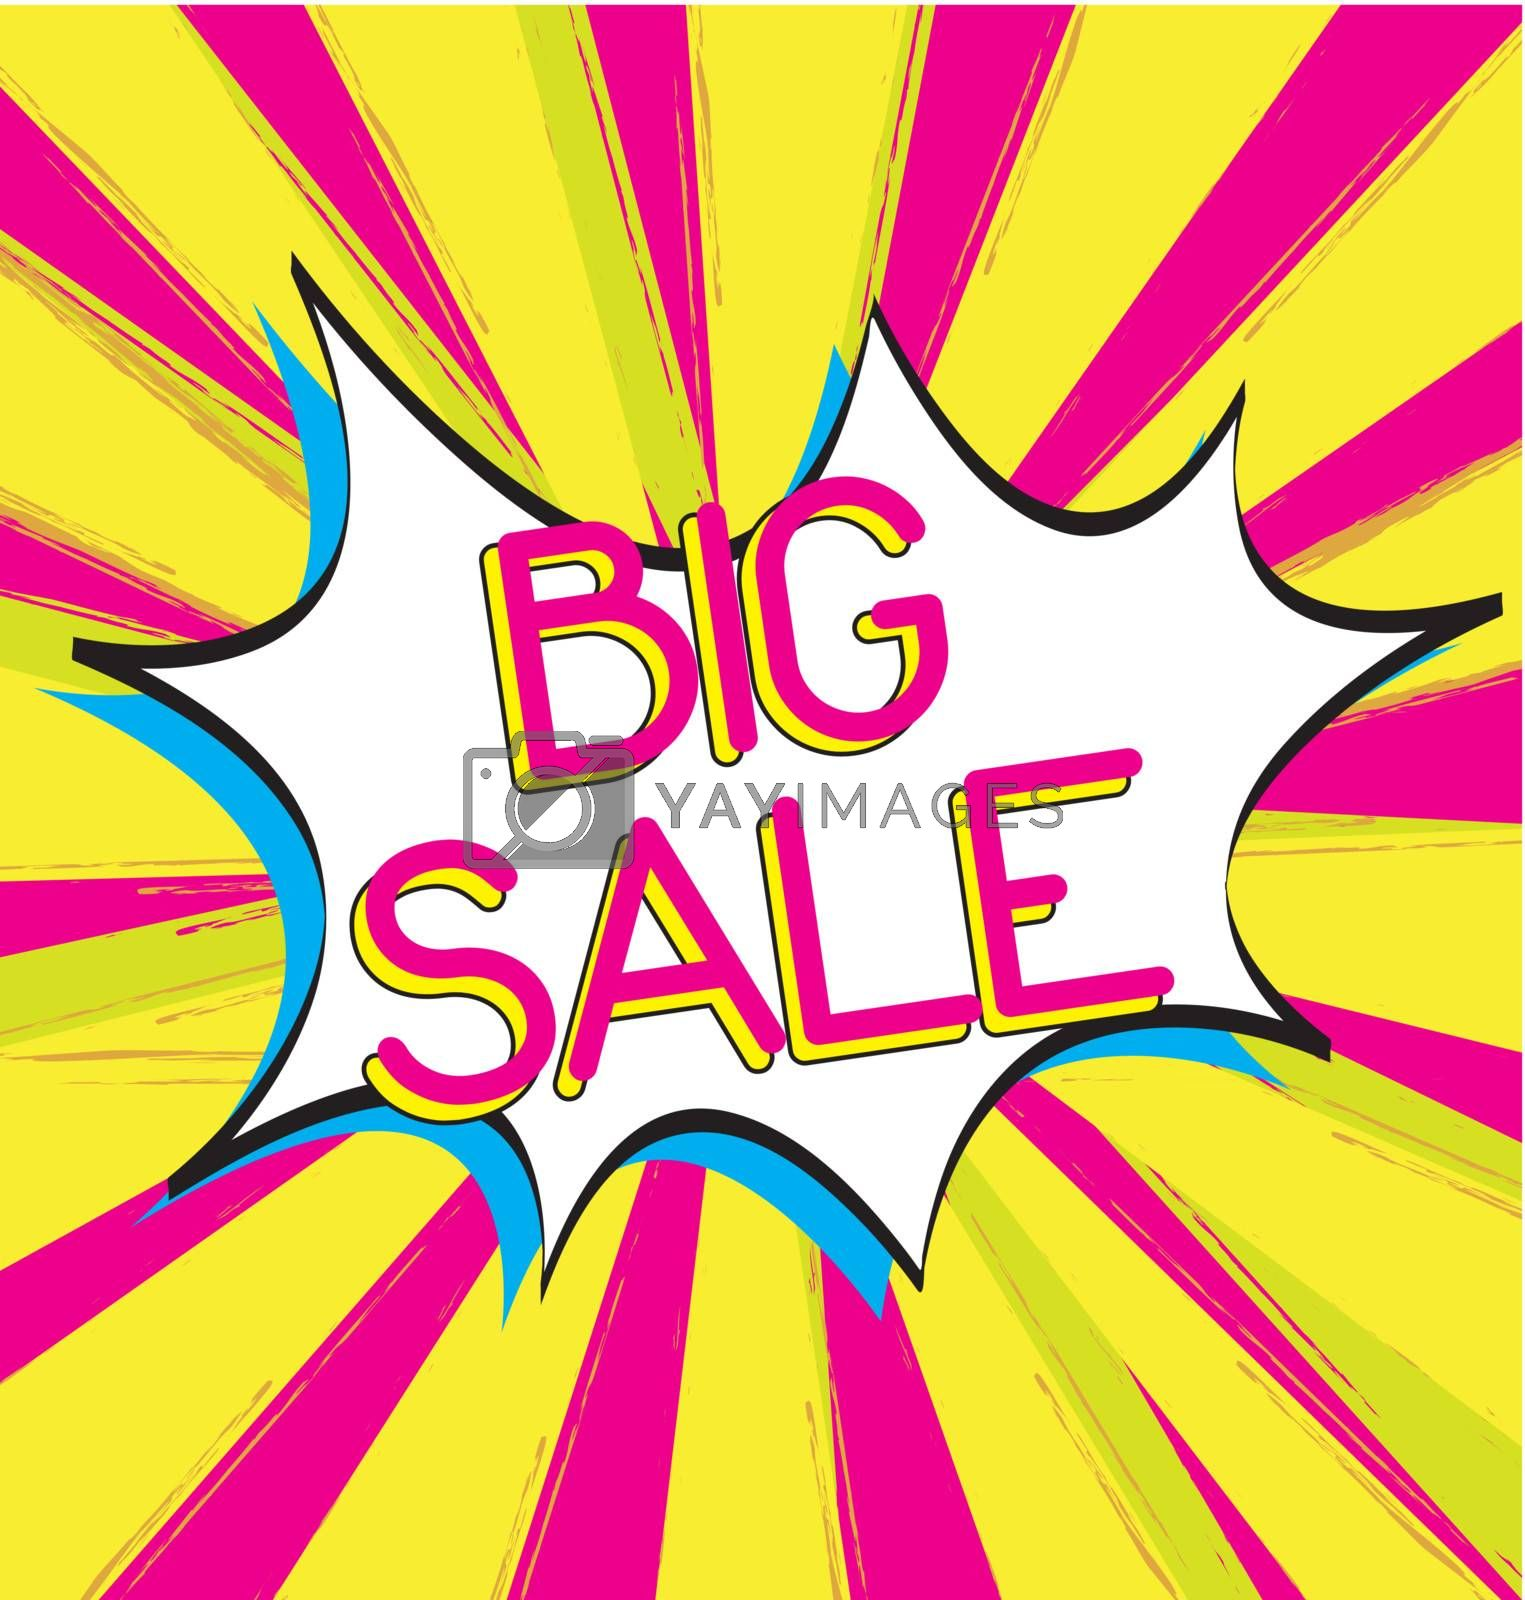 Bubble comic of big sale  over yellow and pink background